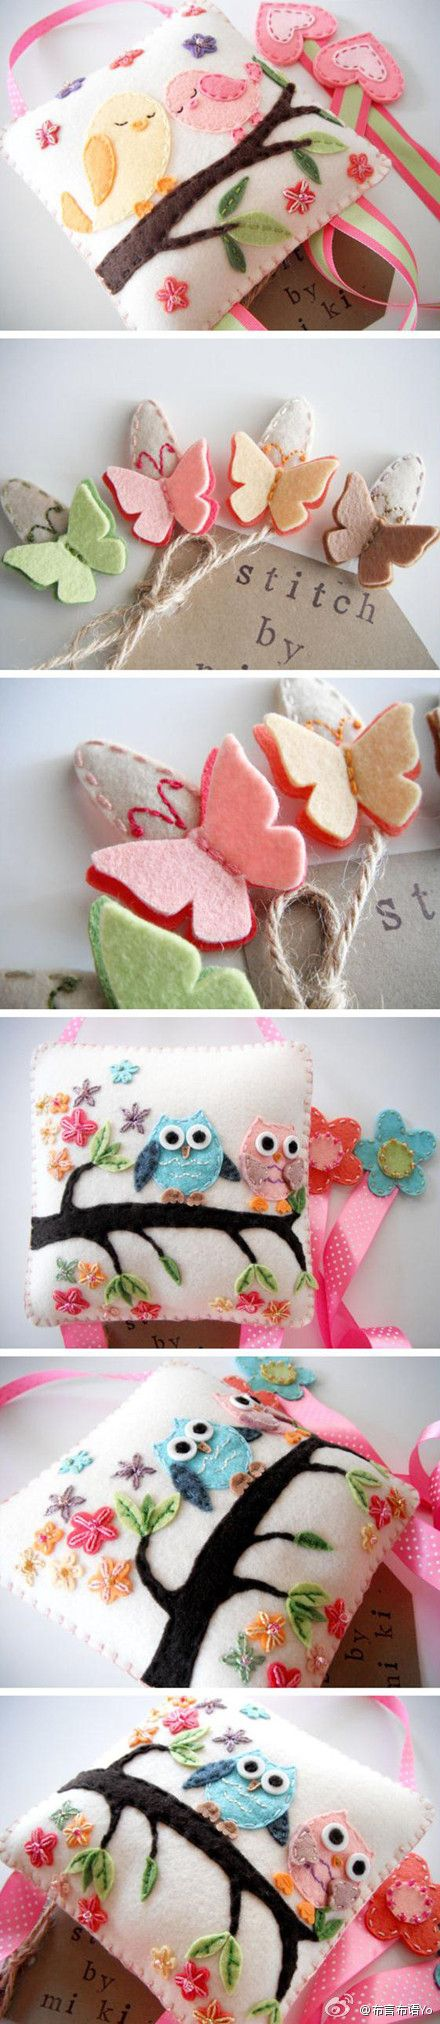 Cute felt pillows (Don't bother with the link, there are no instructions) but want to keep the picture where I can find it for holiday gift possibilities...